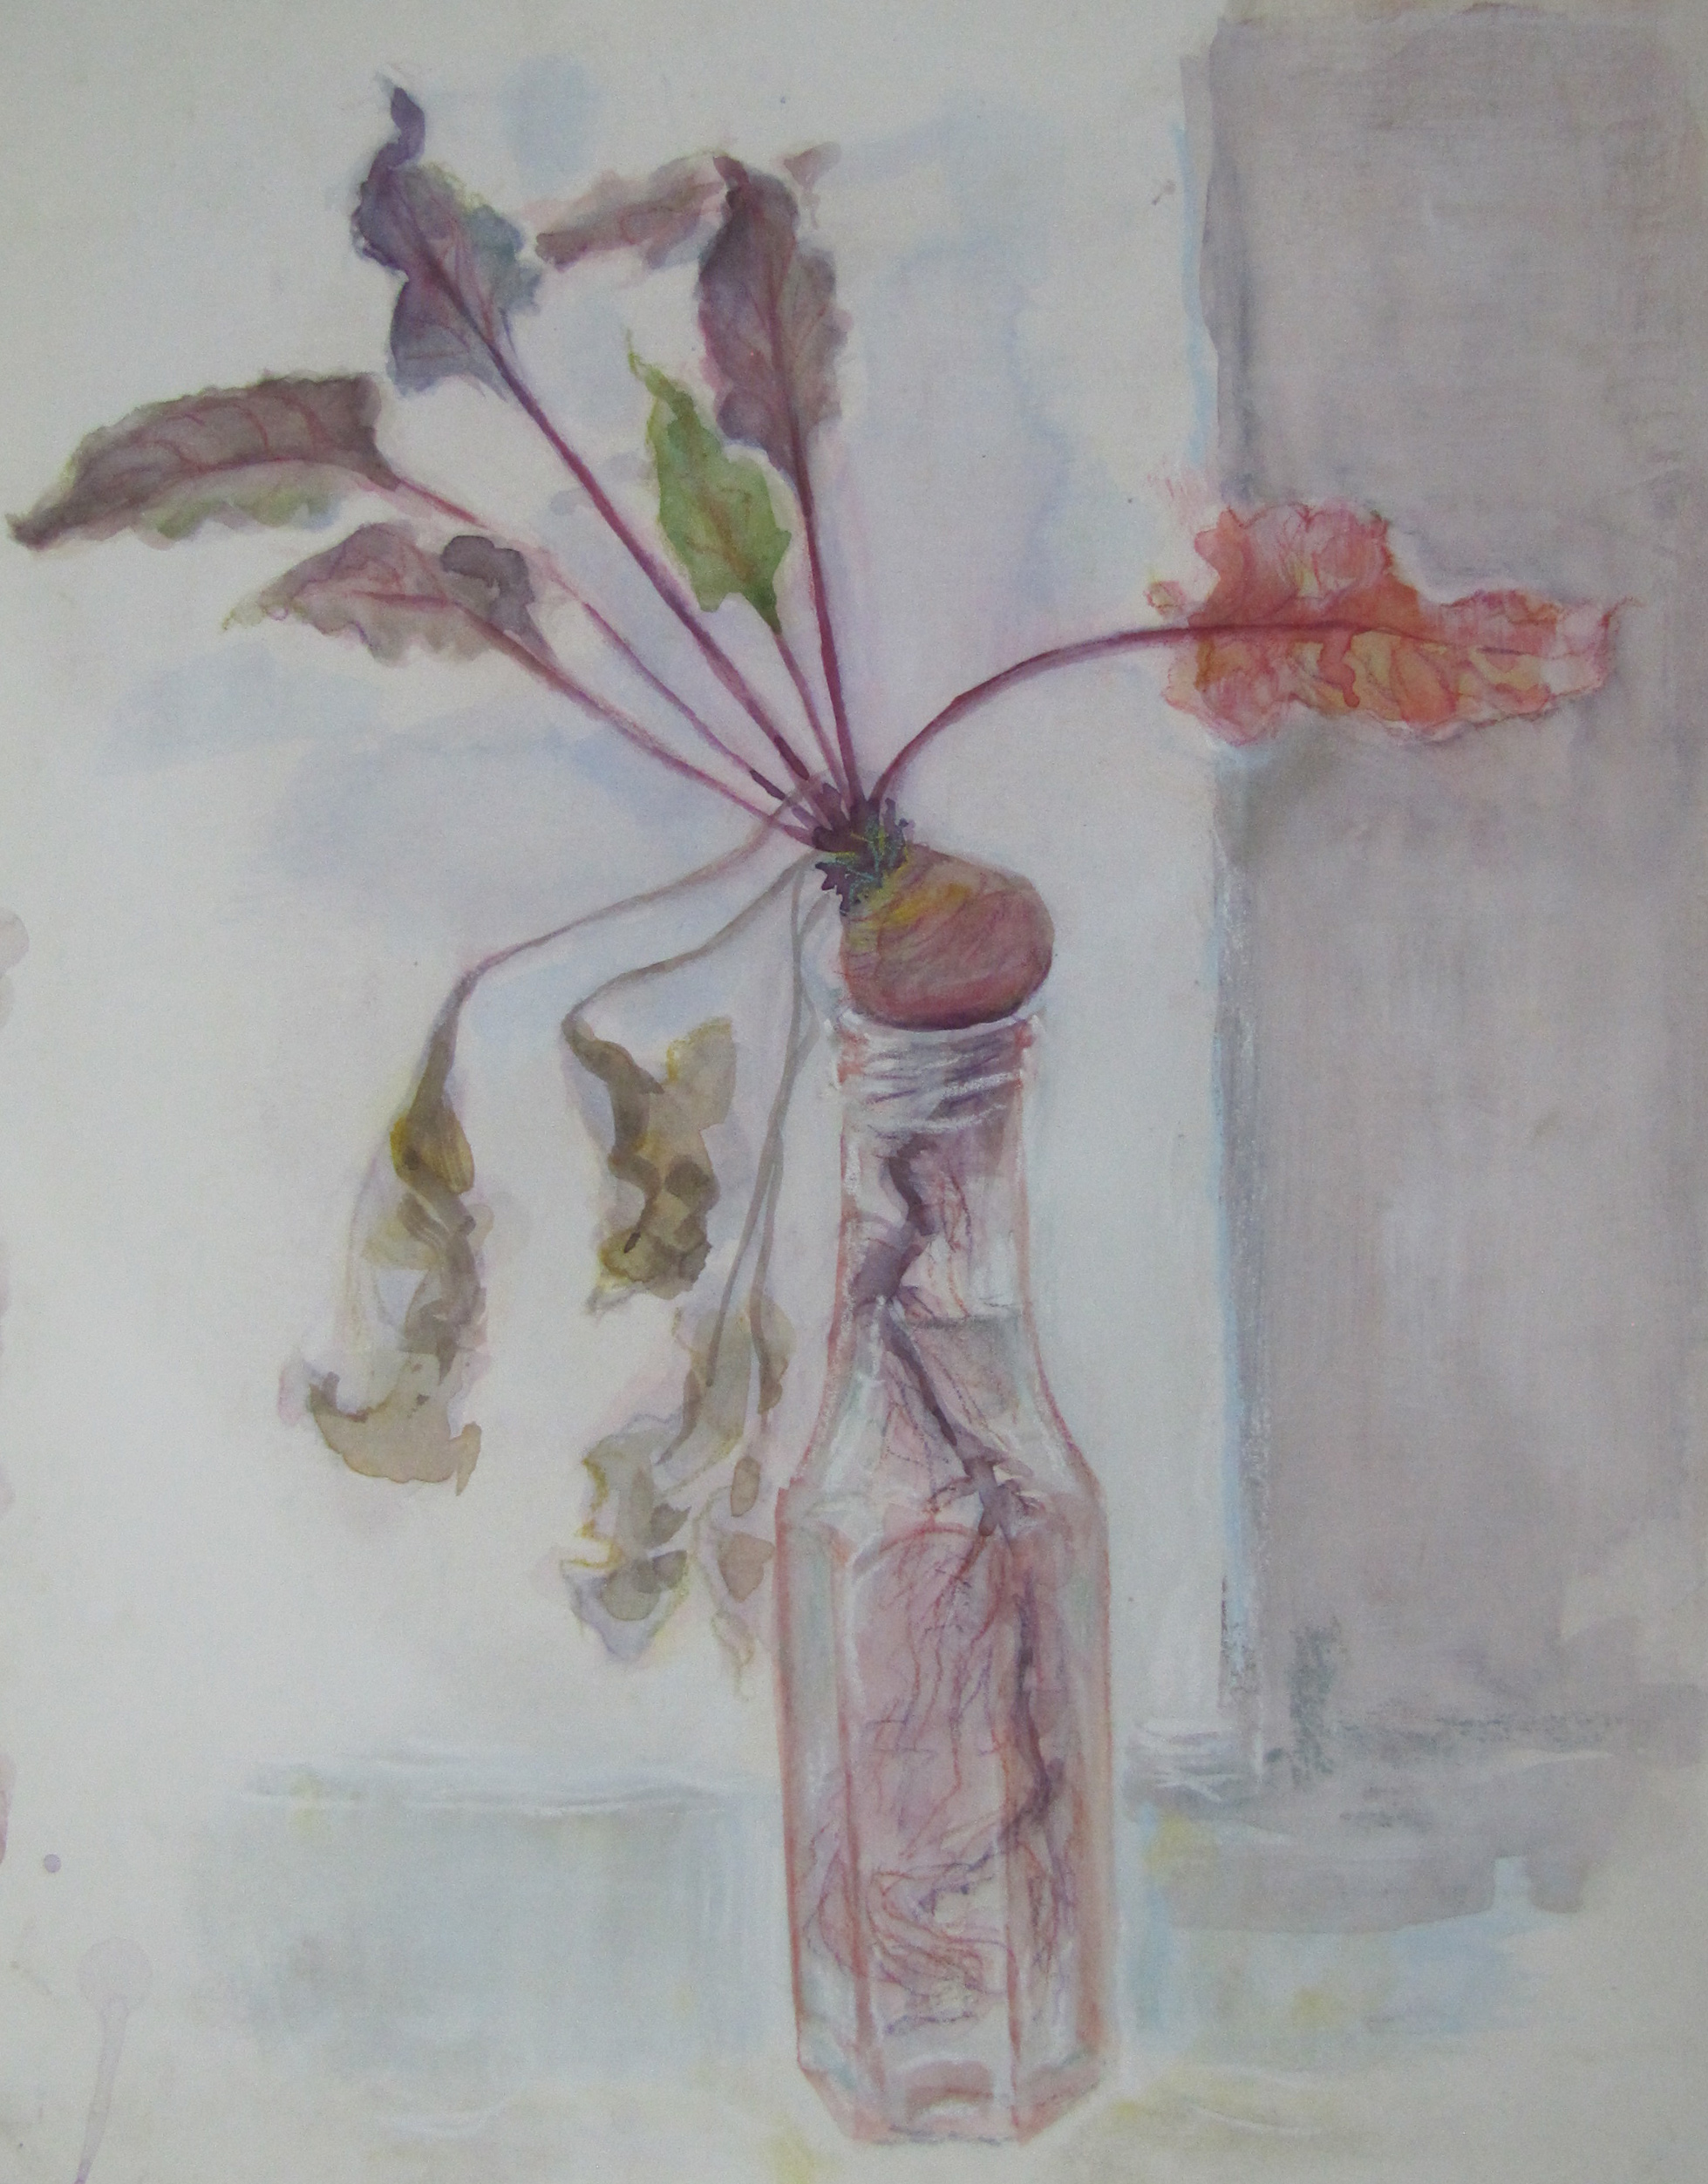 Study – young beetroot in a sauce bottle. 2003.